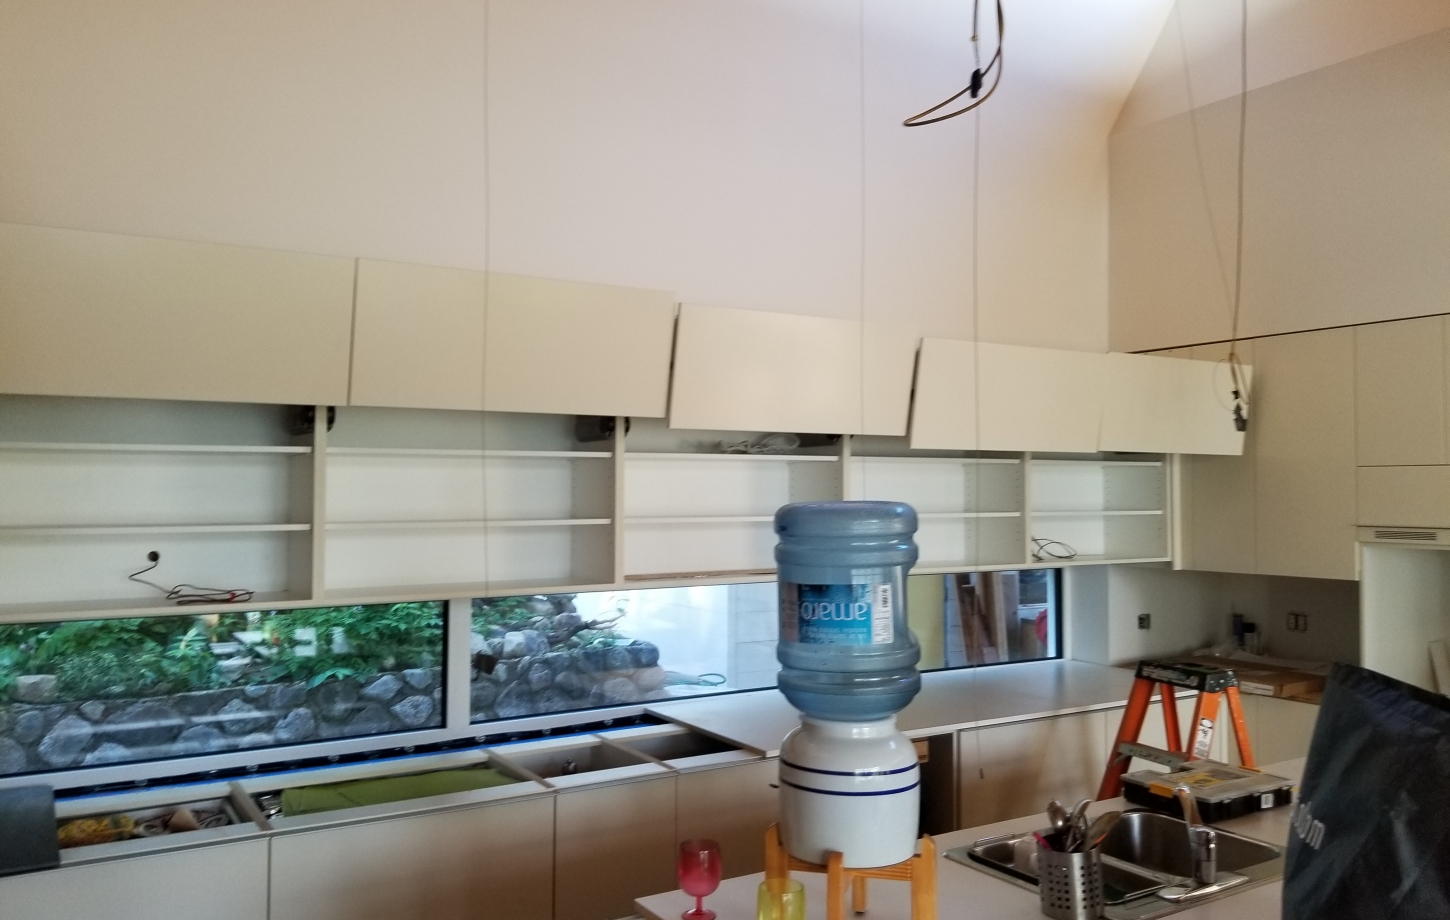 Installation of kitchen cabinets